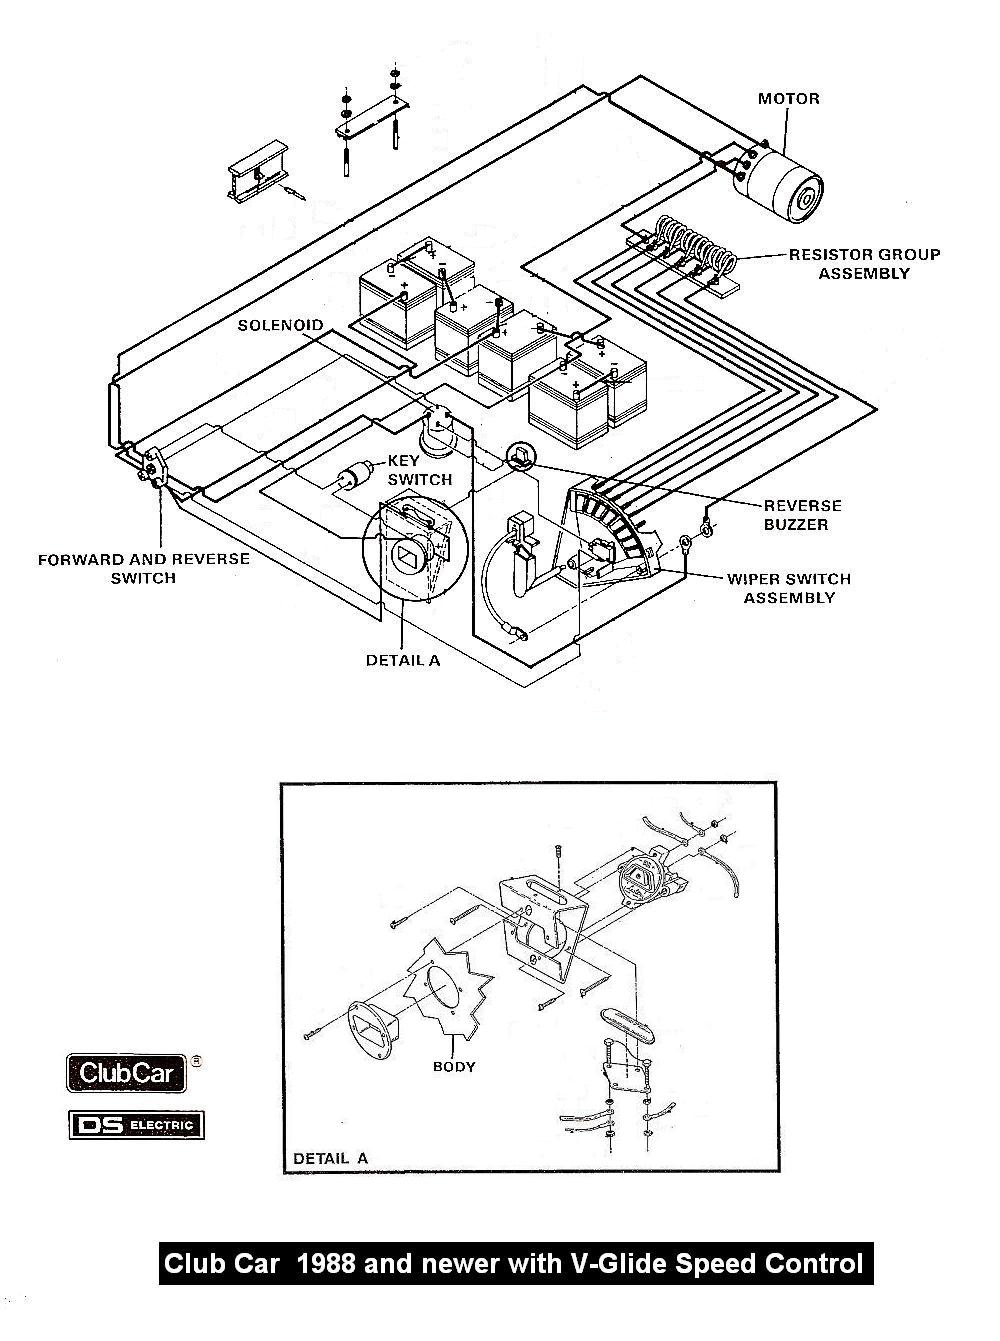 86 Club Car Wiring Diagram - wiring diagrams schematics